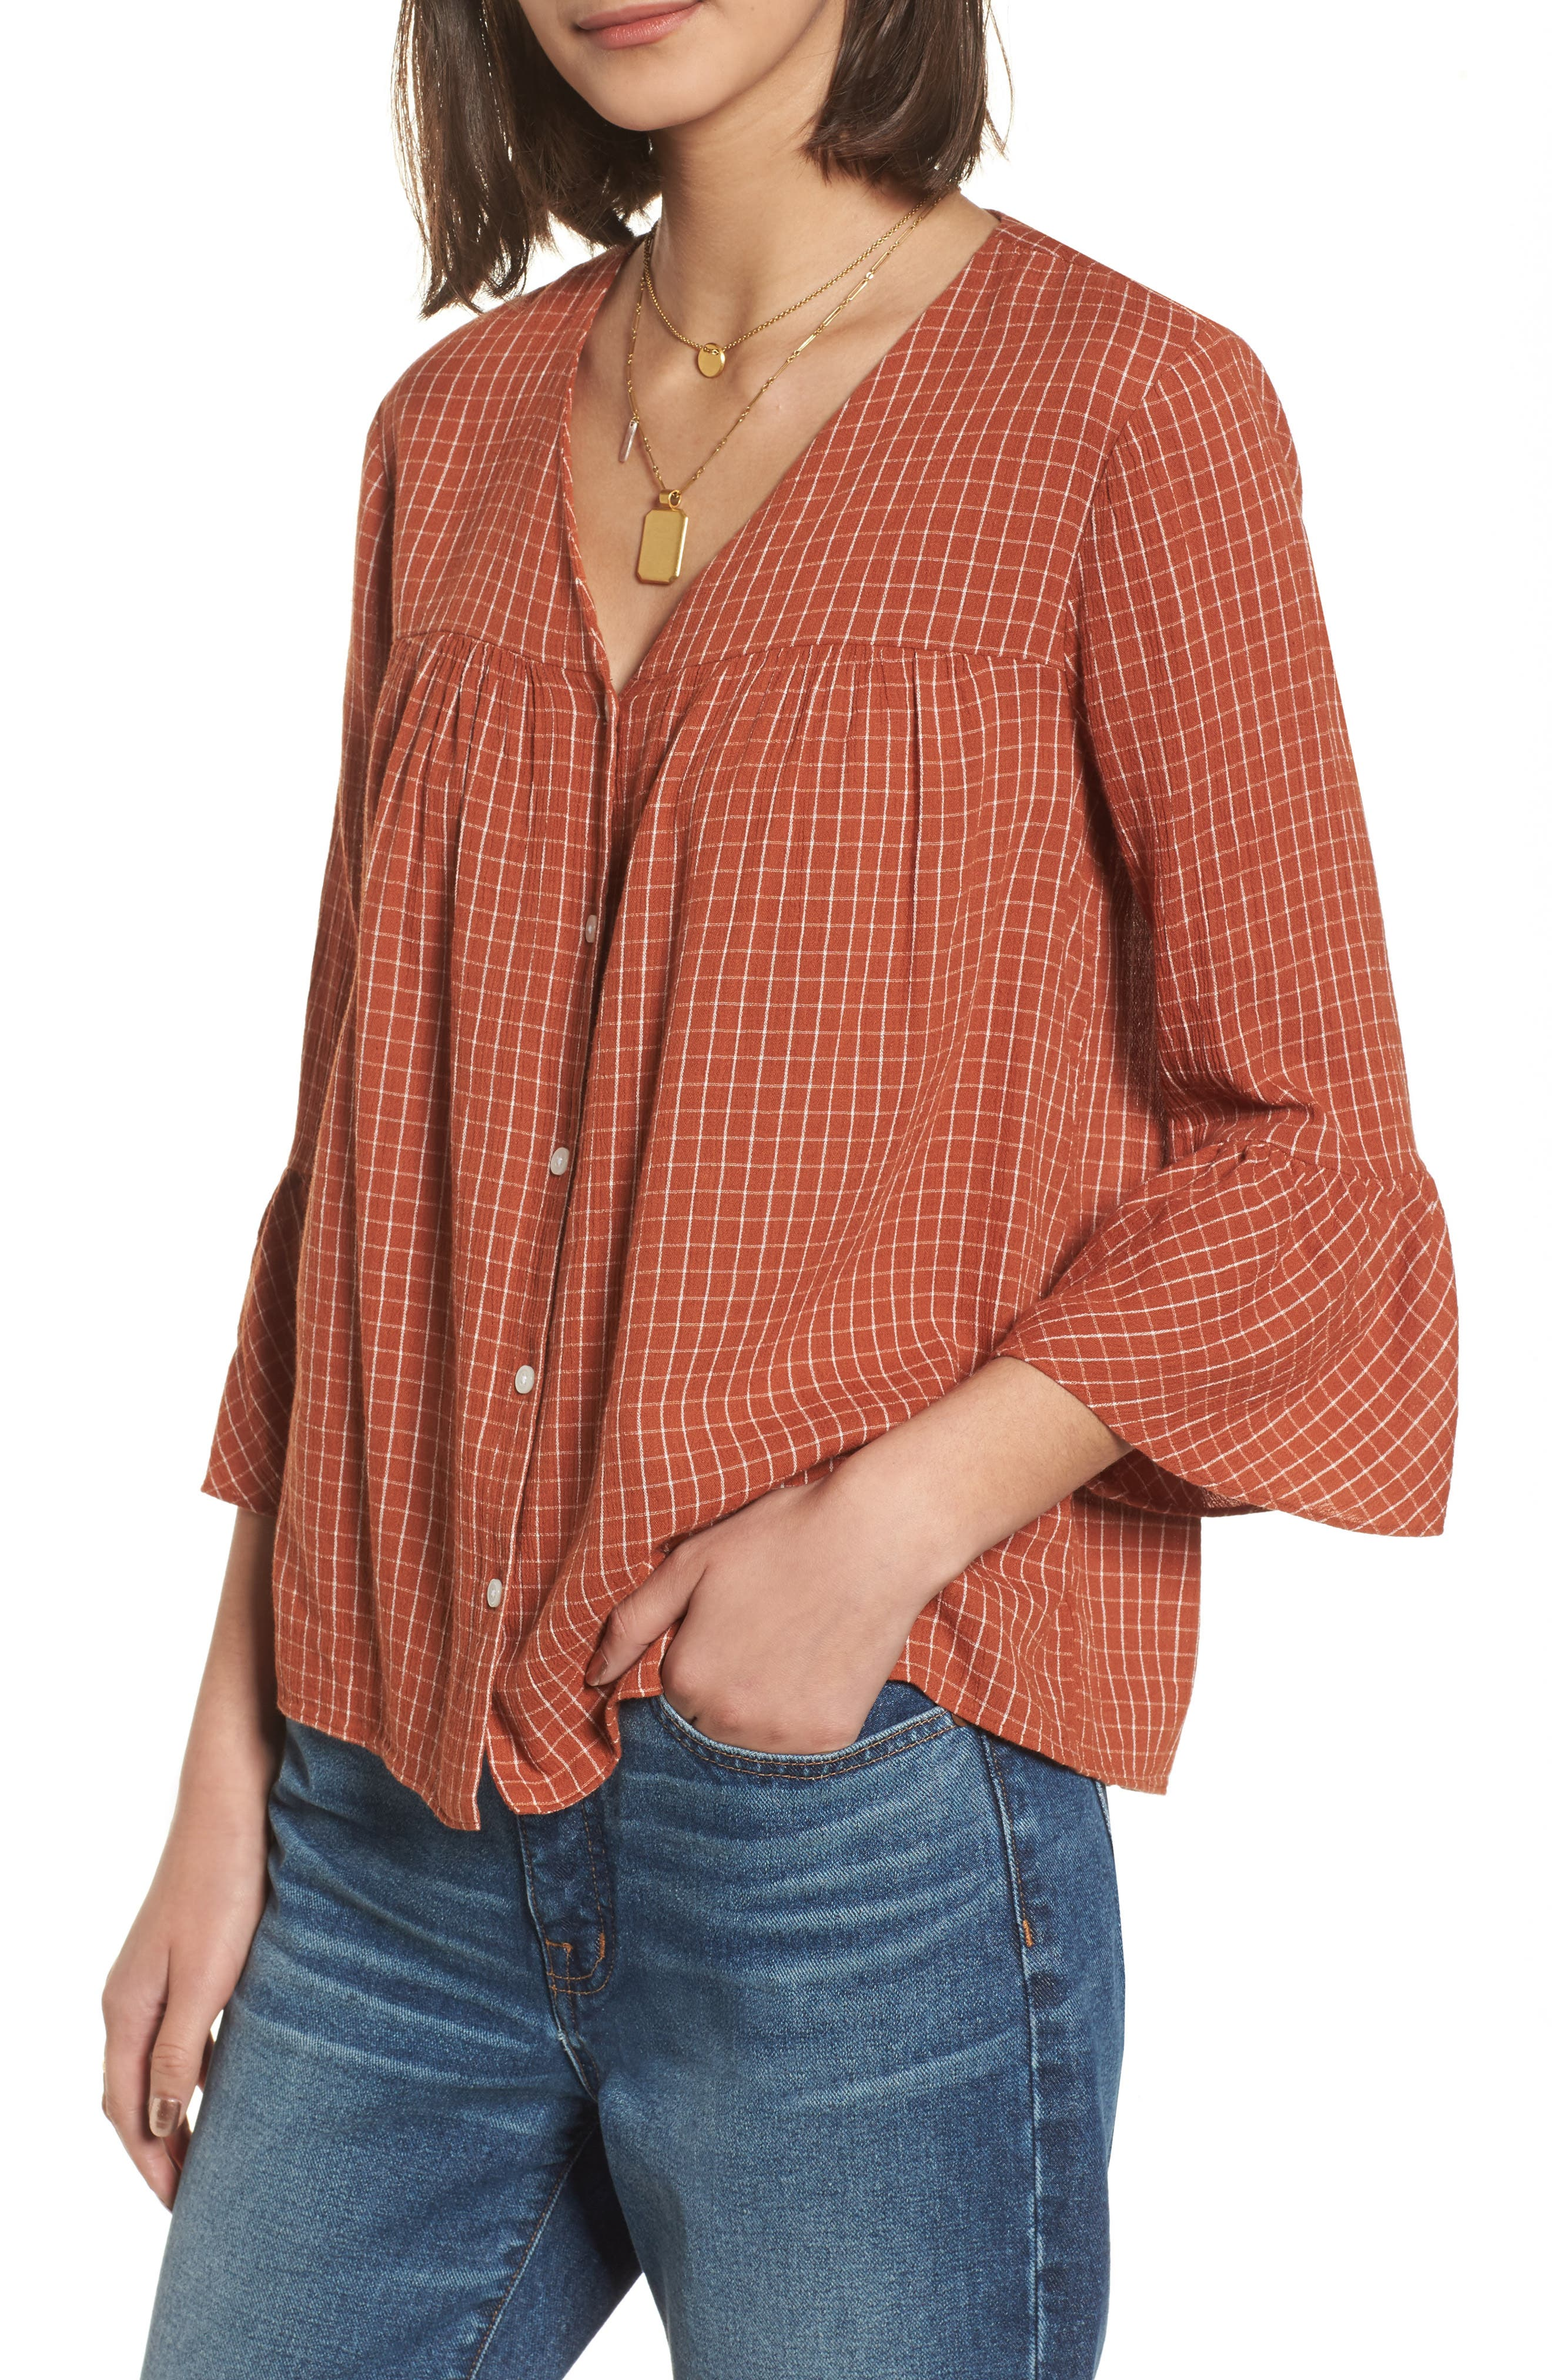 Alternate Image 1 Selected - Madewell Veranda Bell Sleeve Shirt